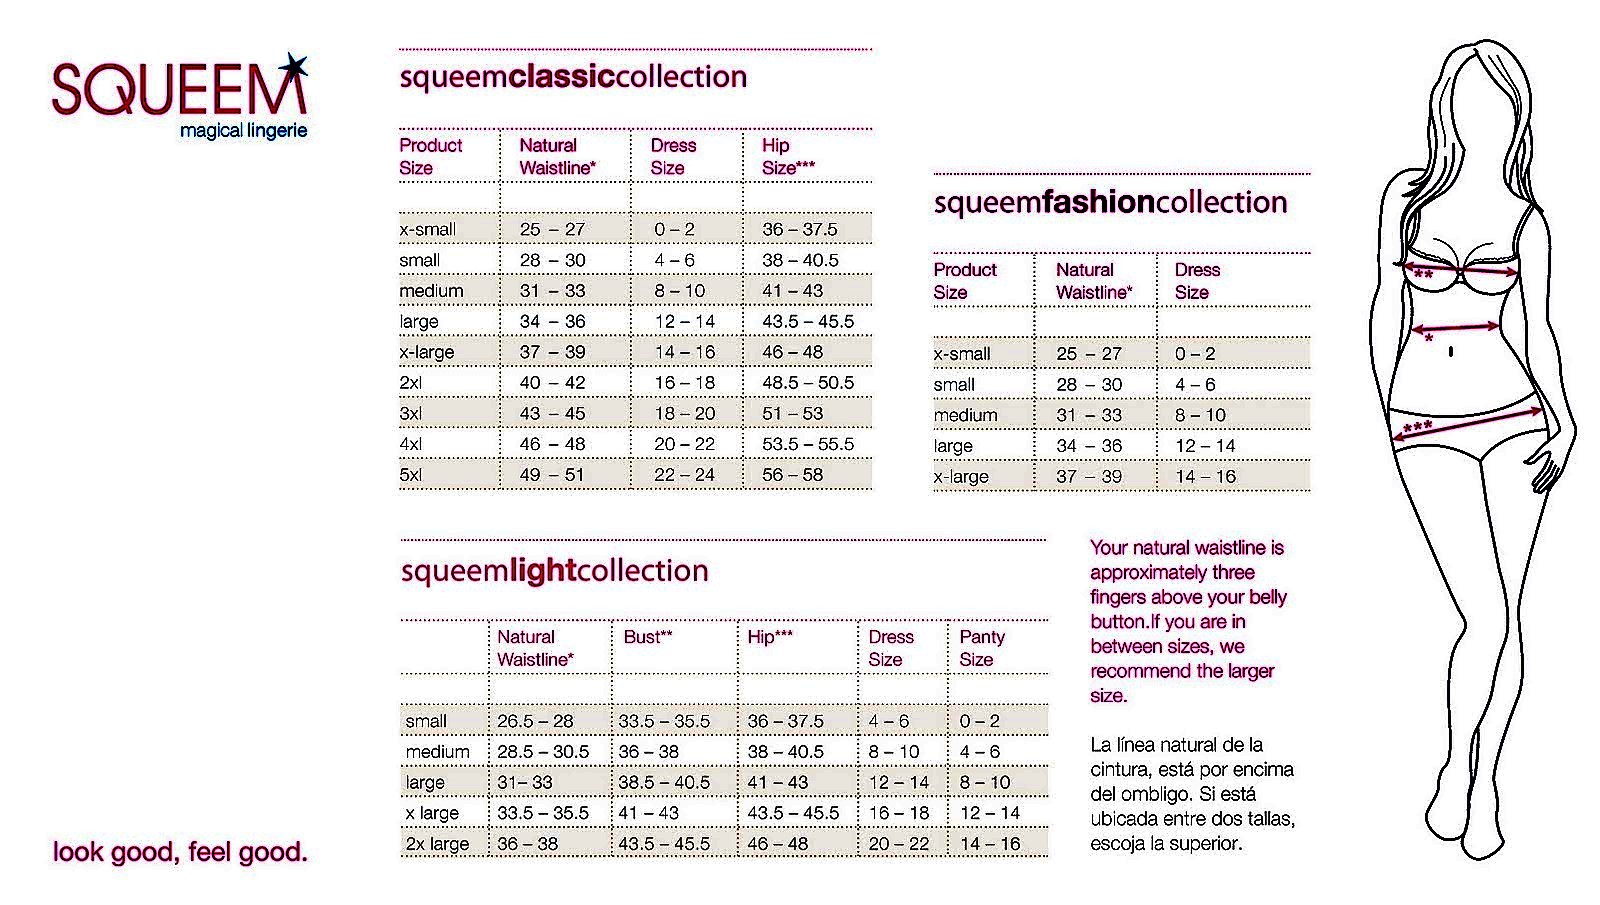 Squeem sizing chart with detailed measuements